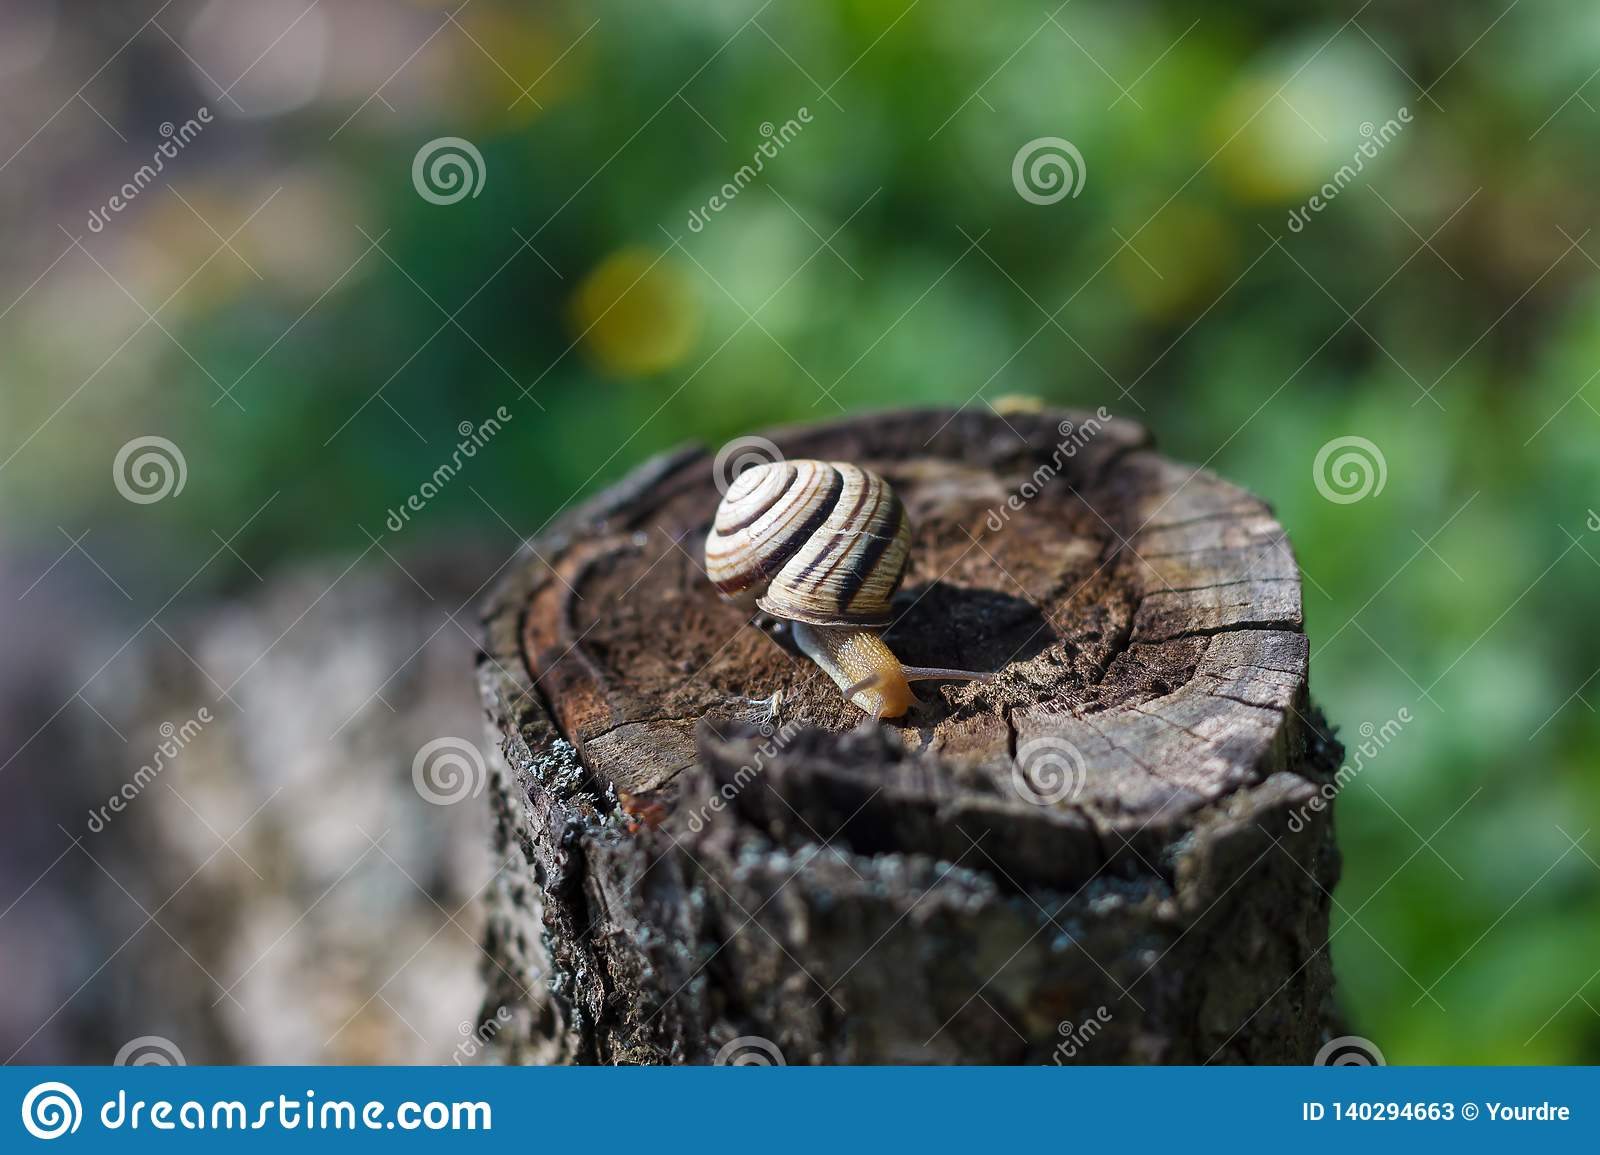 Snail crawling on a tree or bark